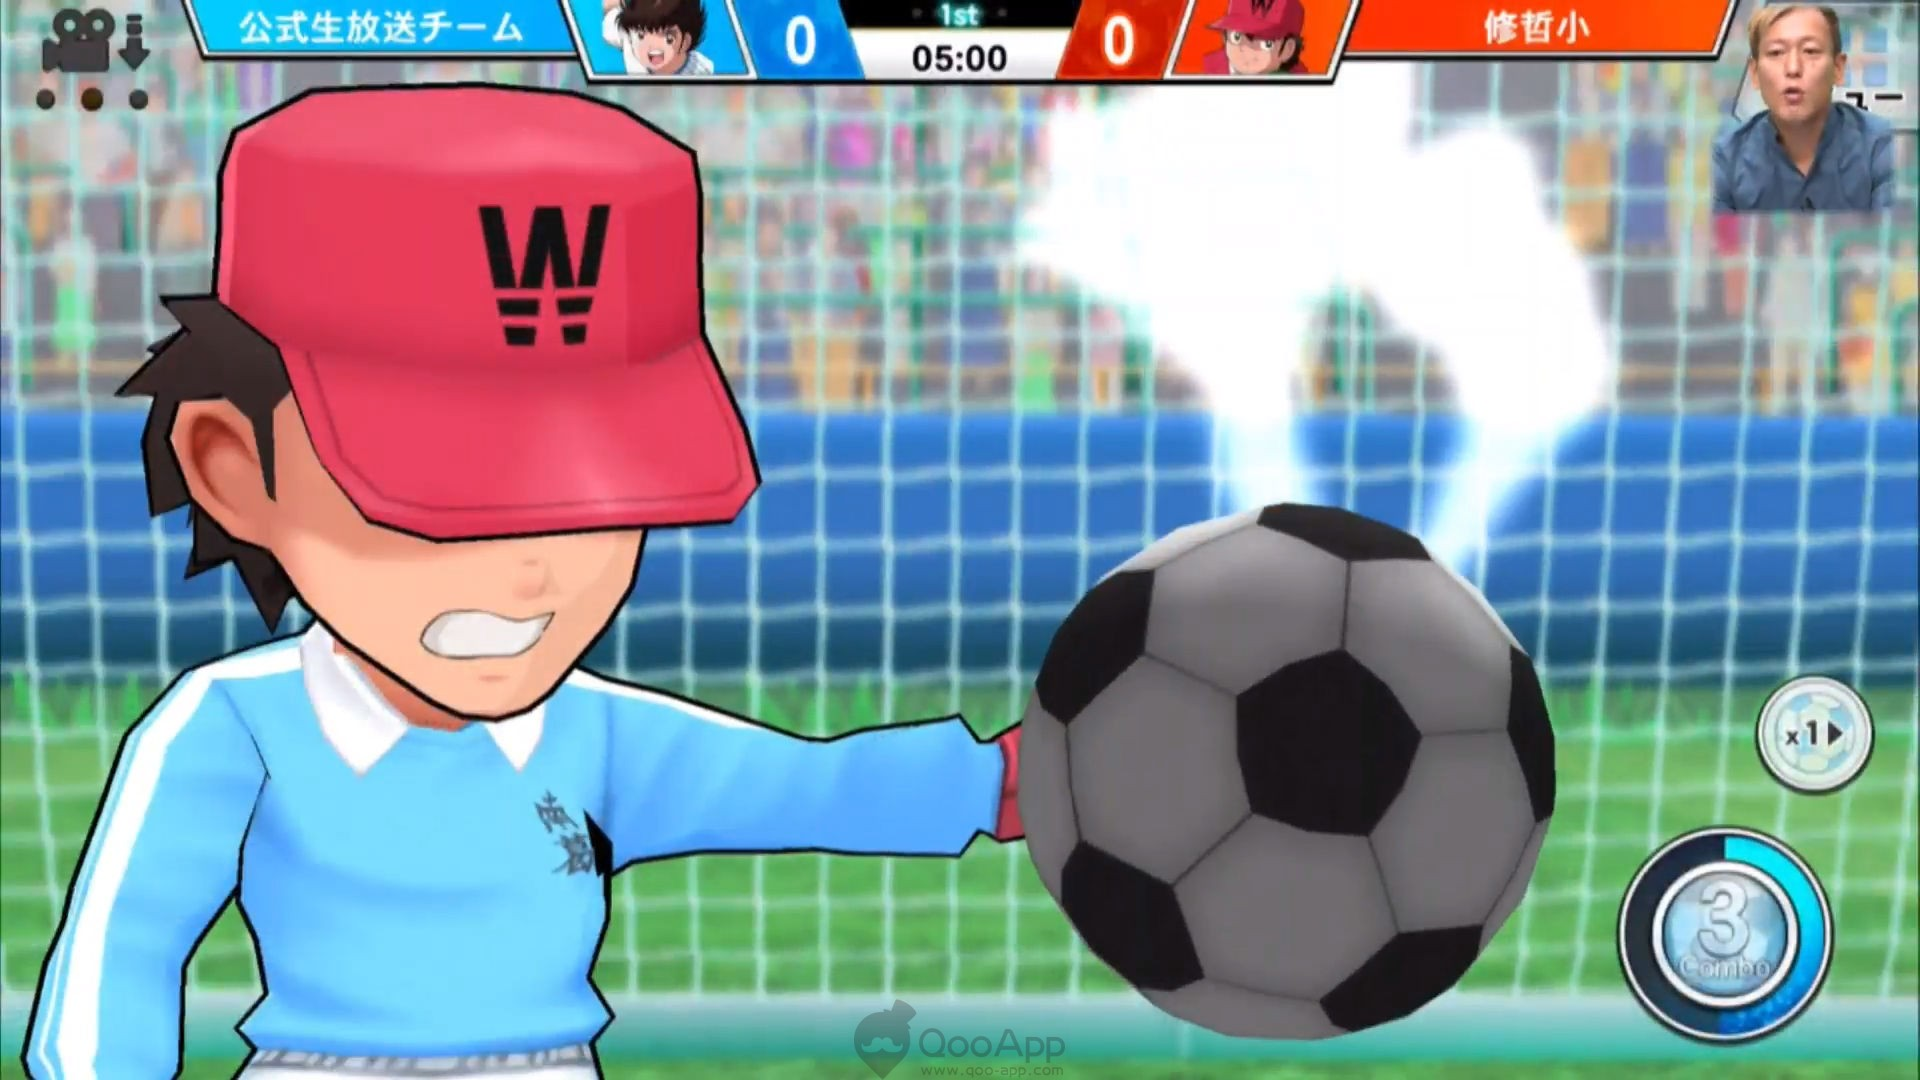 Captain Tsubasa Zero Gameplay Revealed!